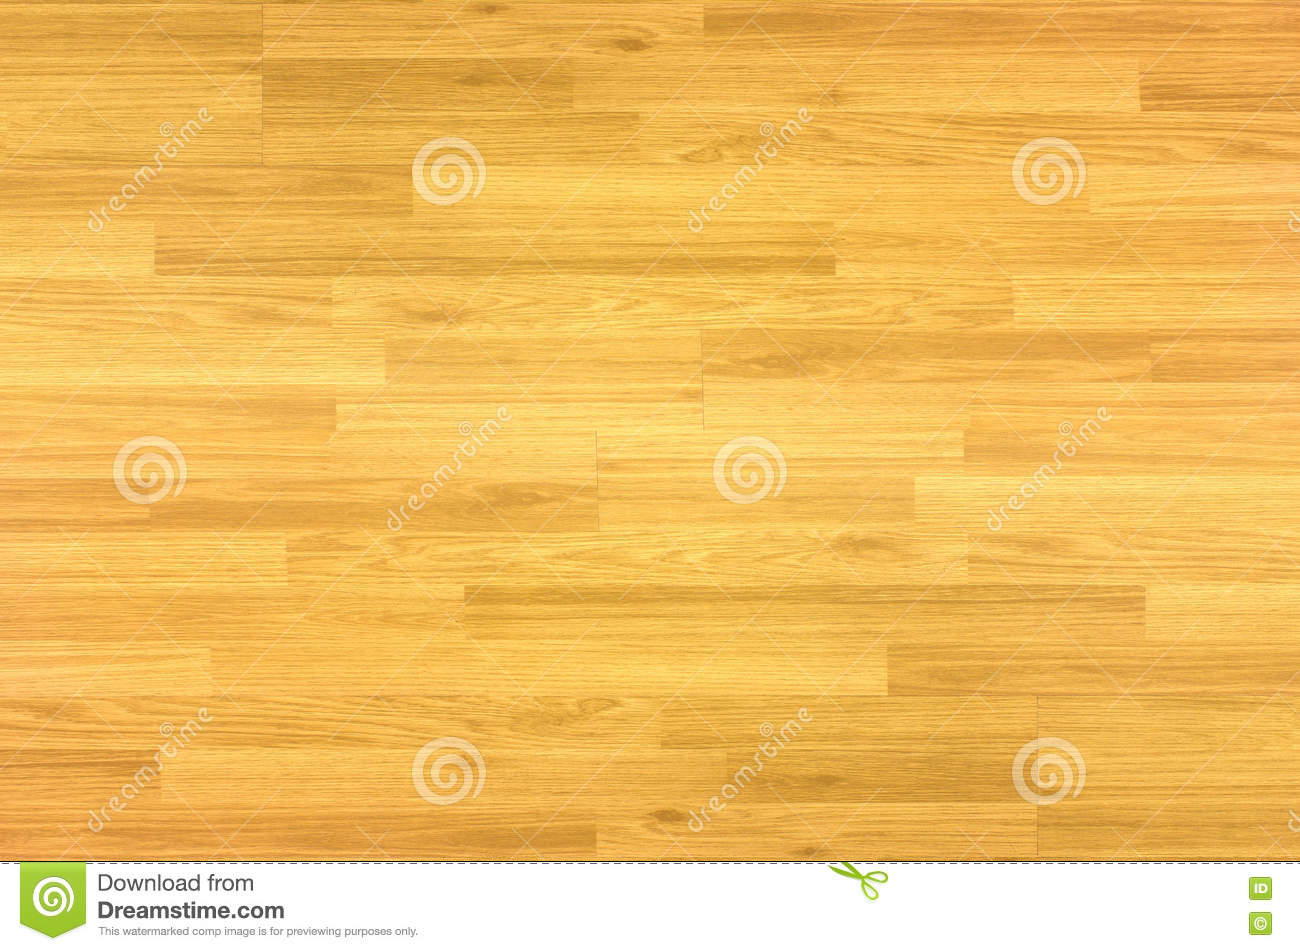 Wood floor parquet hardwood maple basketball court floor viewed - Wood Floor Parquet Hardwood Maple Basketball Court Floor Viewed